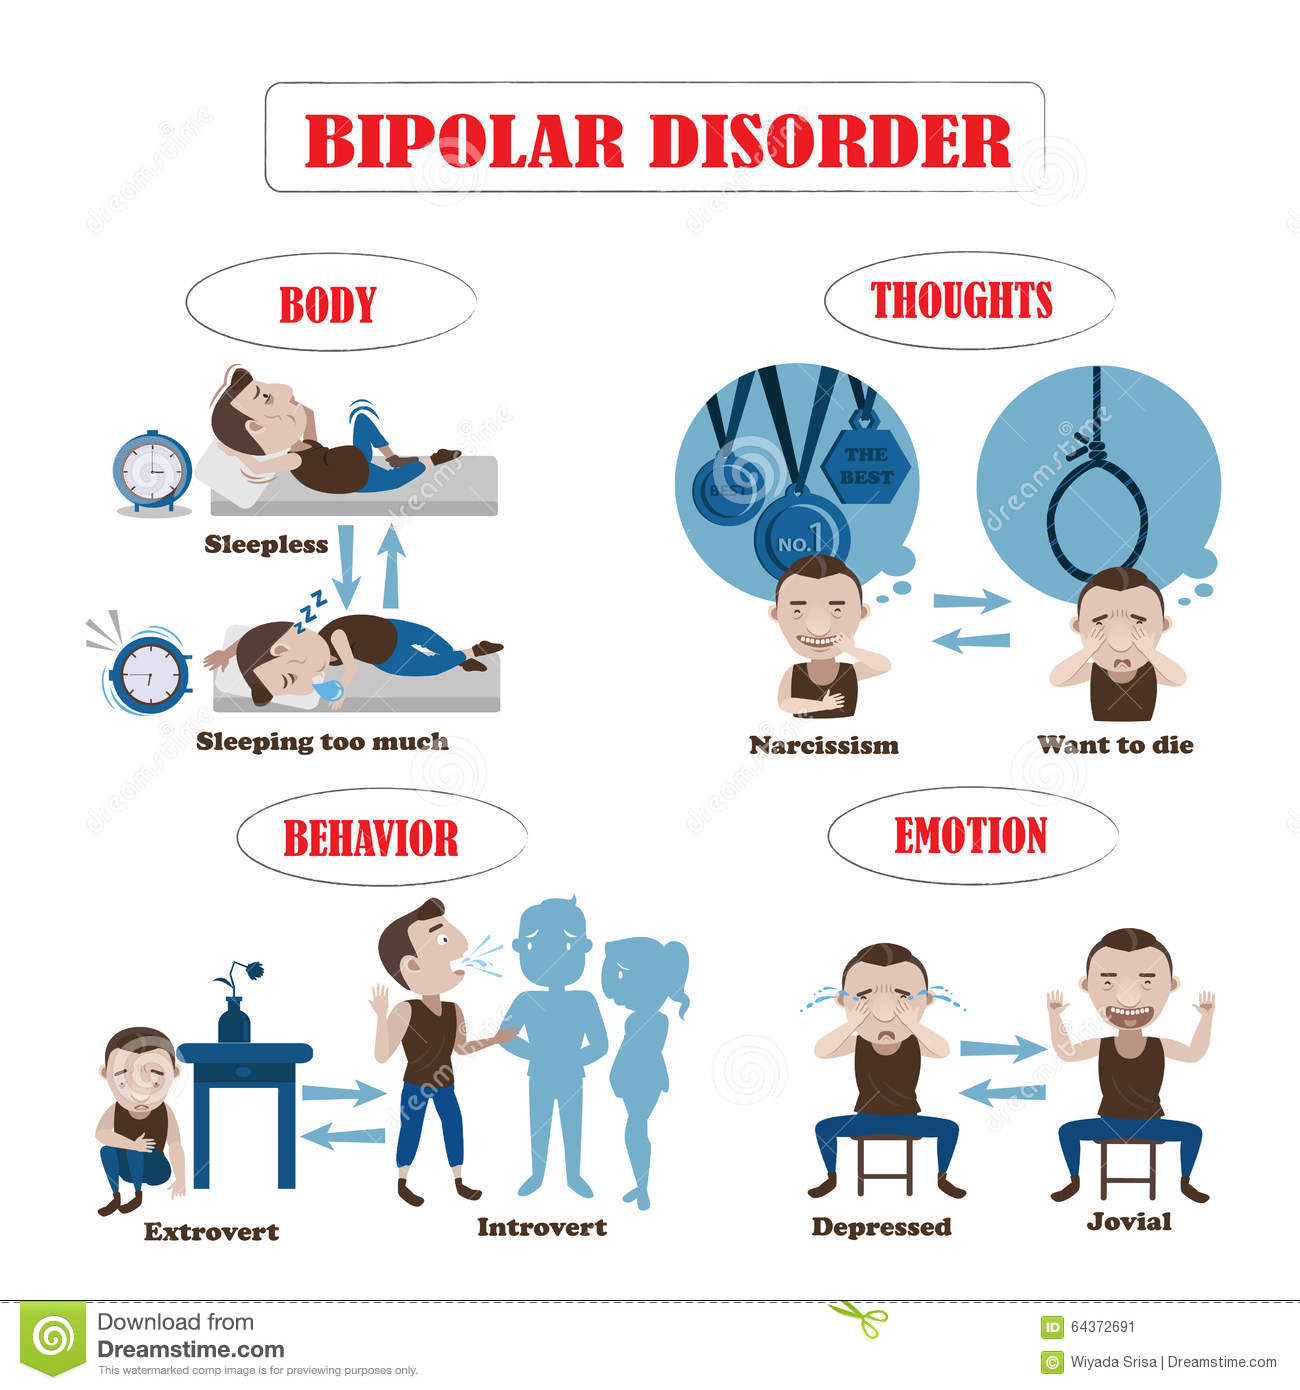 the causes and symptoms of bipolar disorder in preschool aged children